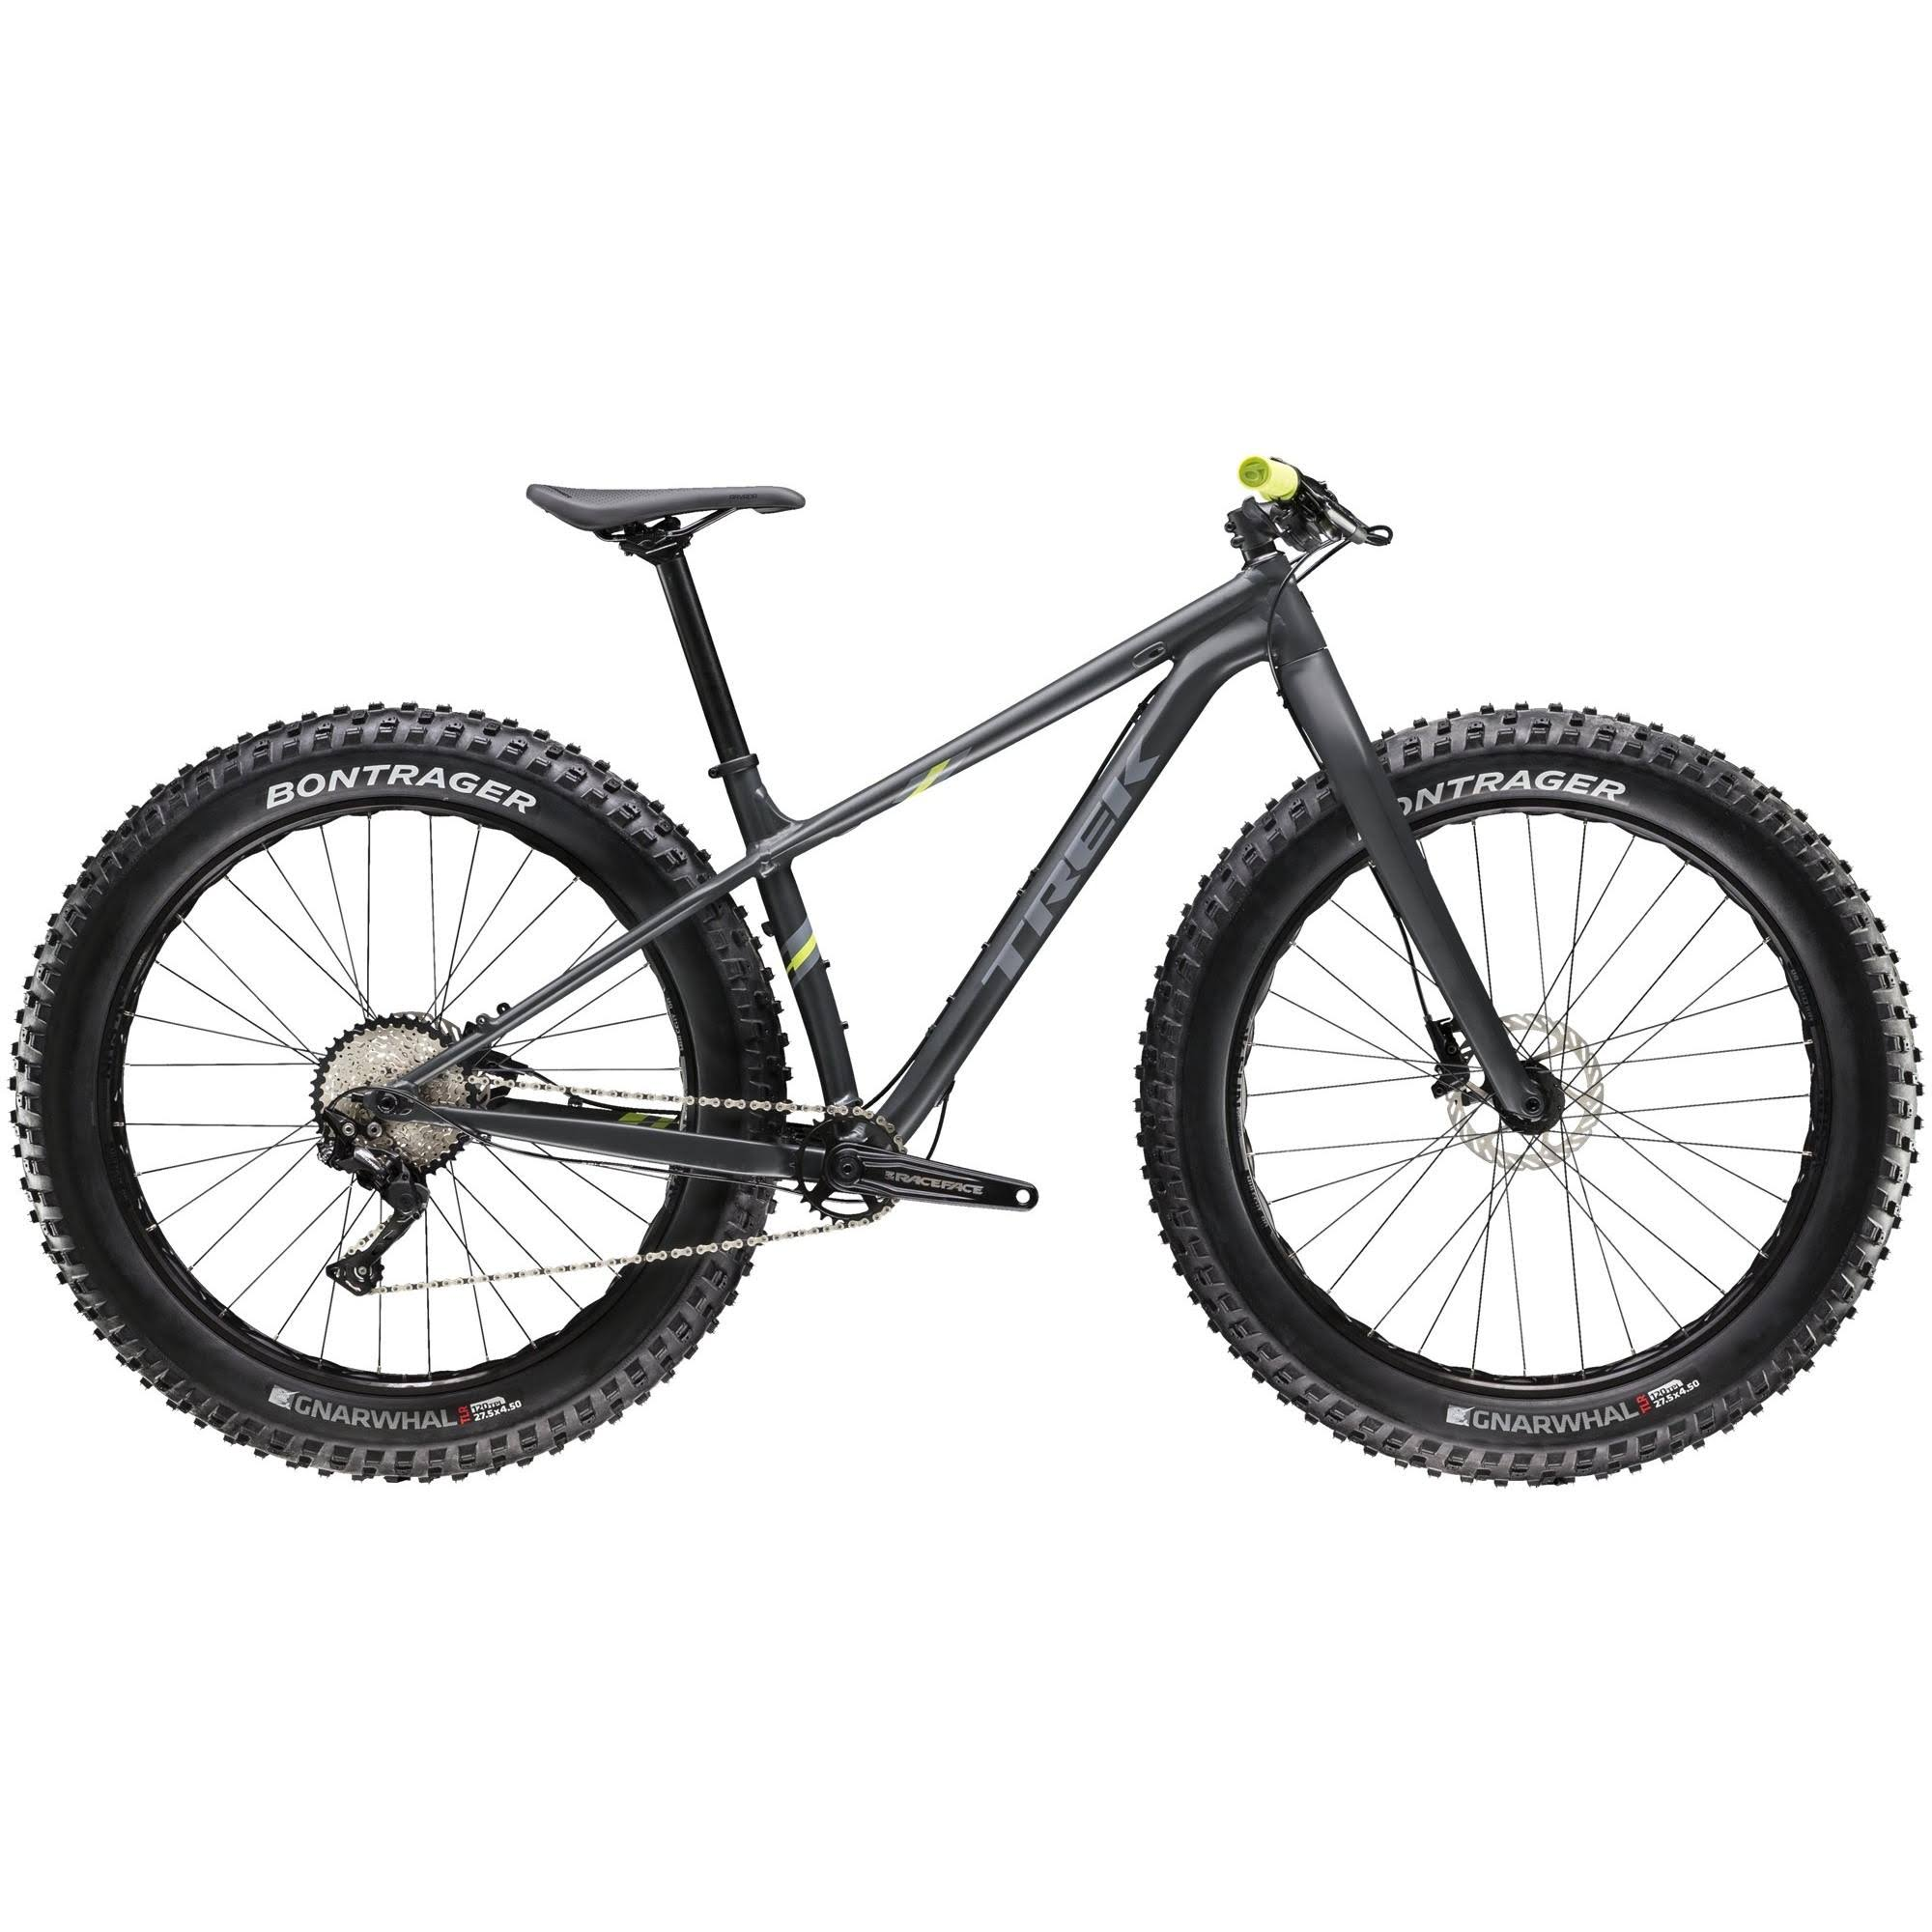 Trek Farley 5 Fat Bike - Matte Solid Charcoal